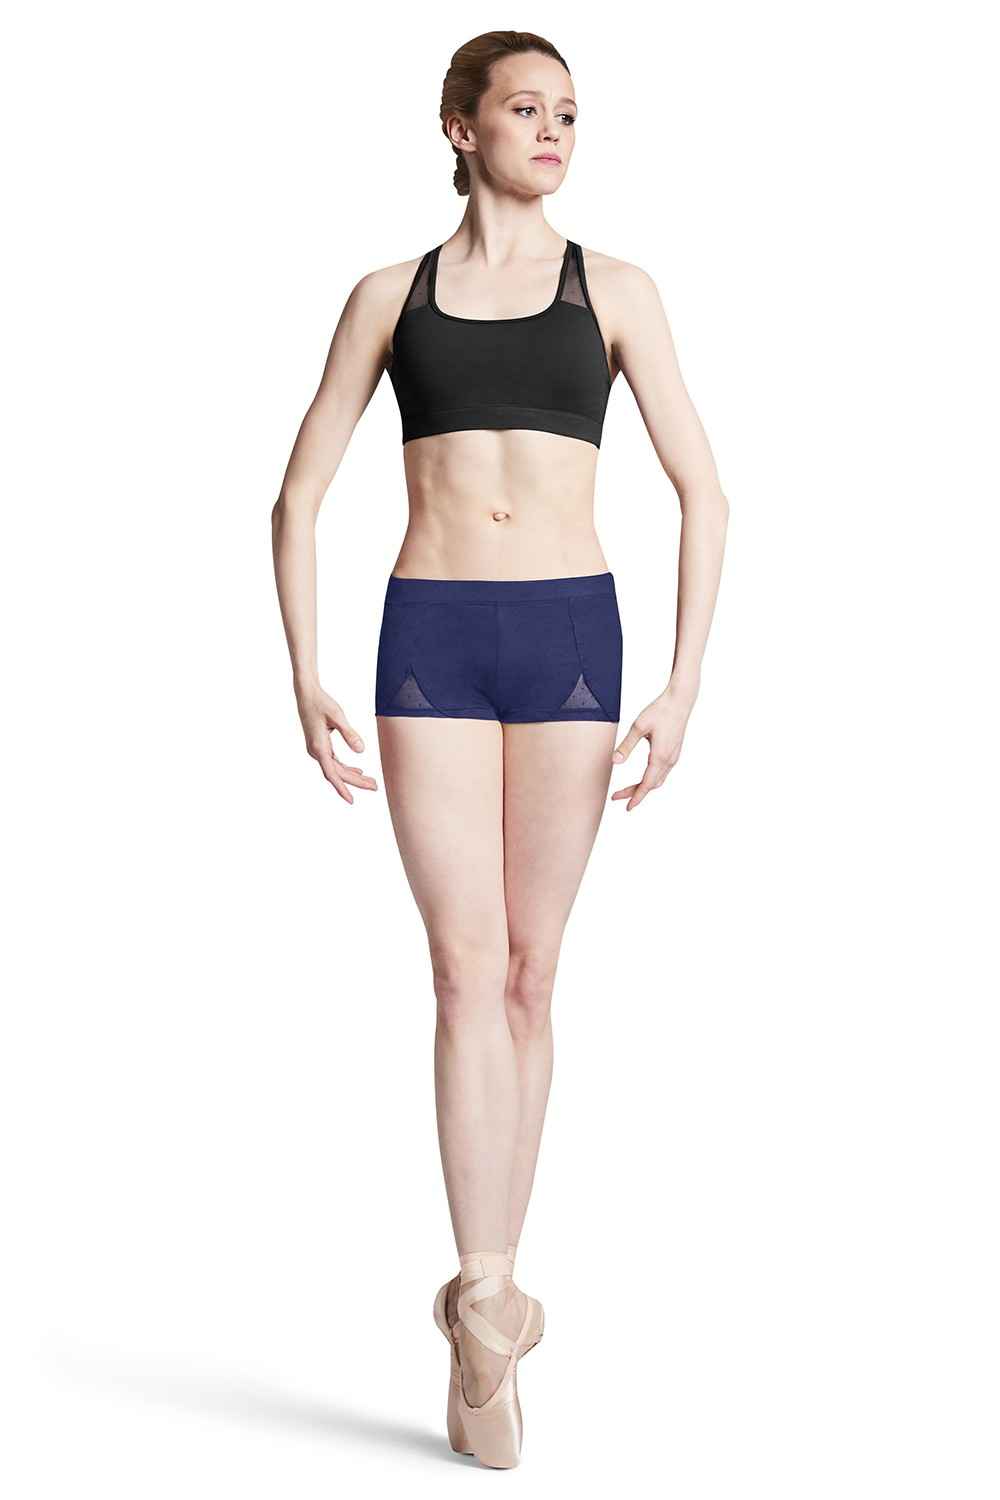 Mesh Shorts Women's Dance Shorts